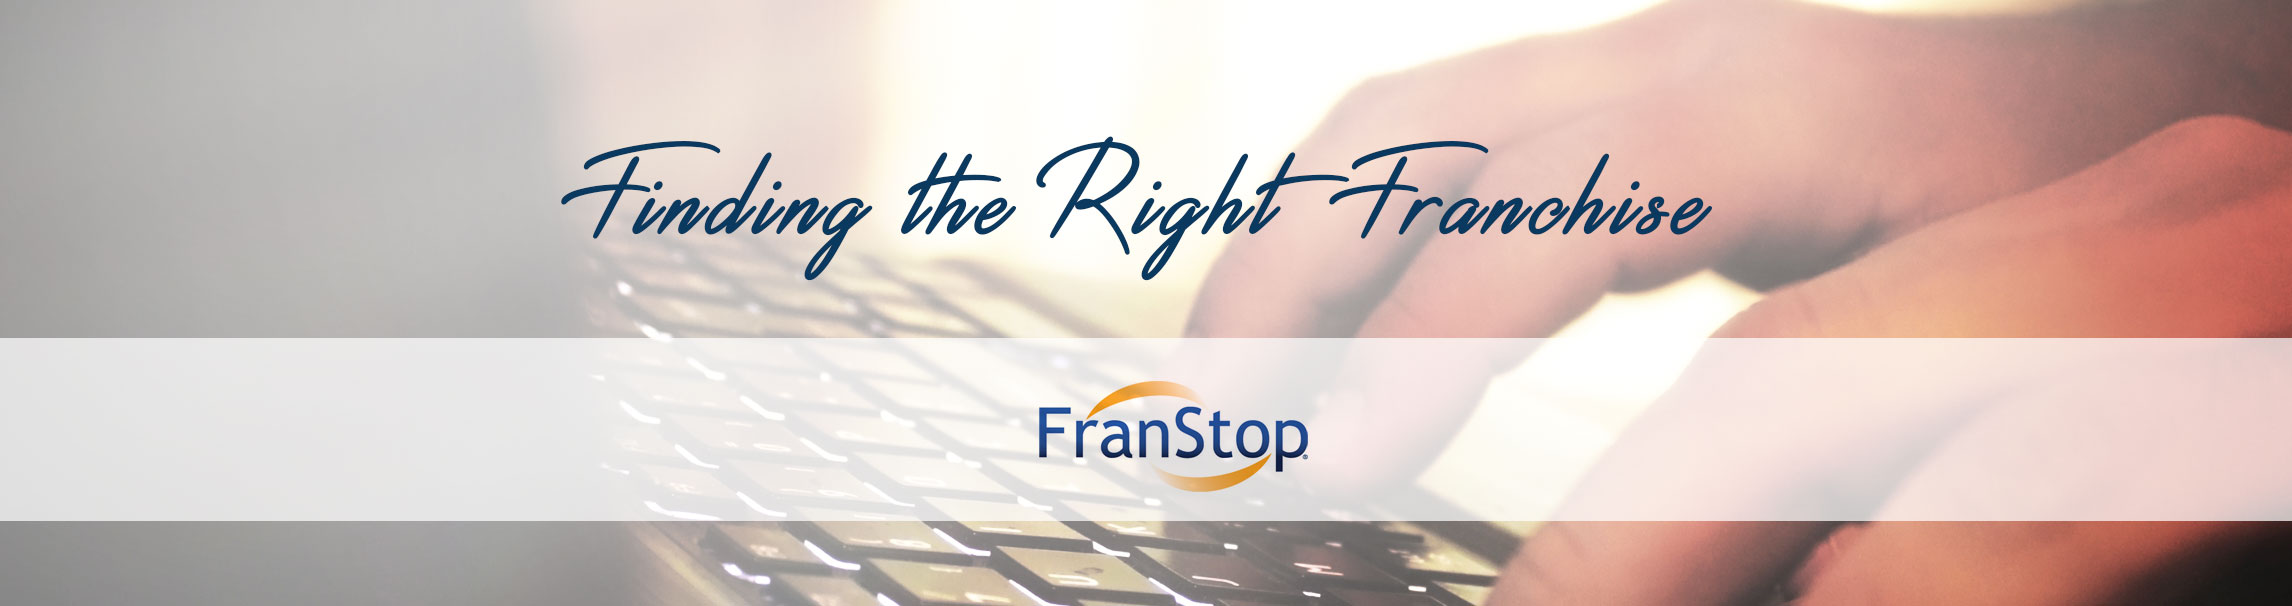 Find_Right_Franchise_Buy_Franchising_Financing_FranStop